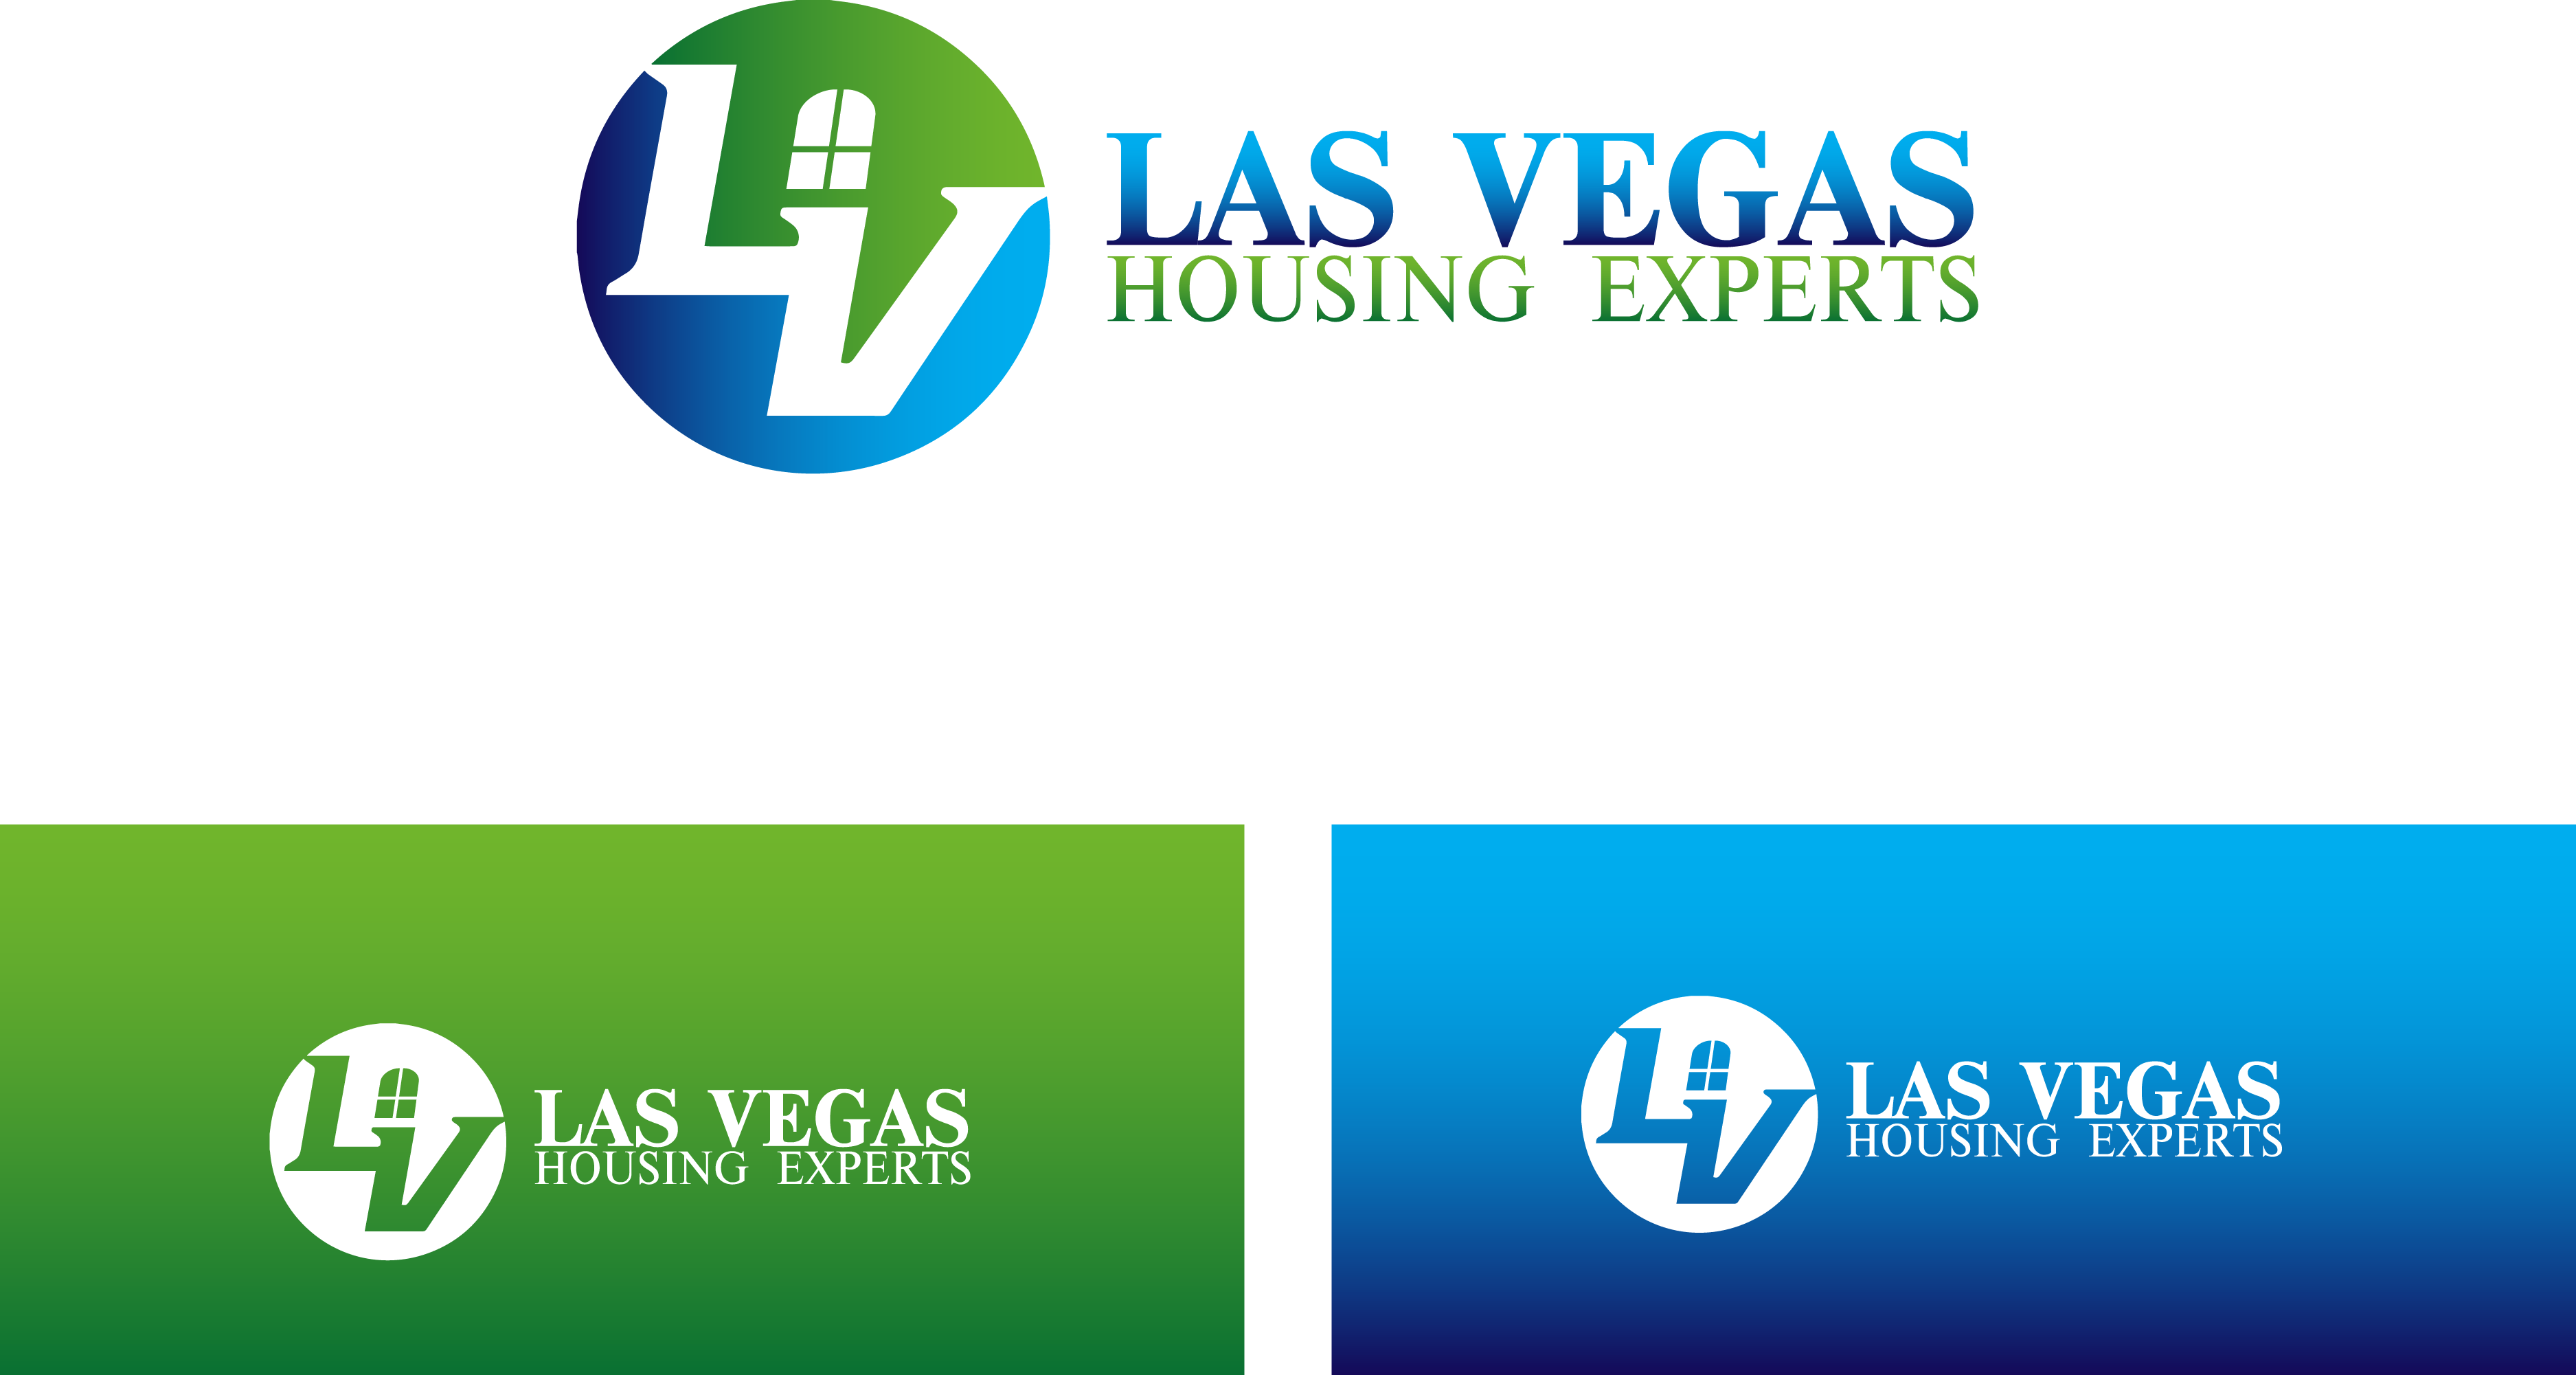 Logo Design by Private User - Entry No. 63 in the Logo Design Contest Las Vegas Housing Experts Logo Design.